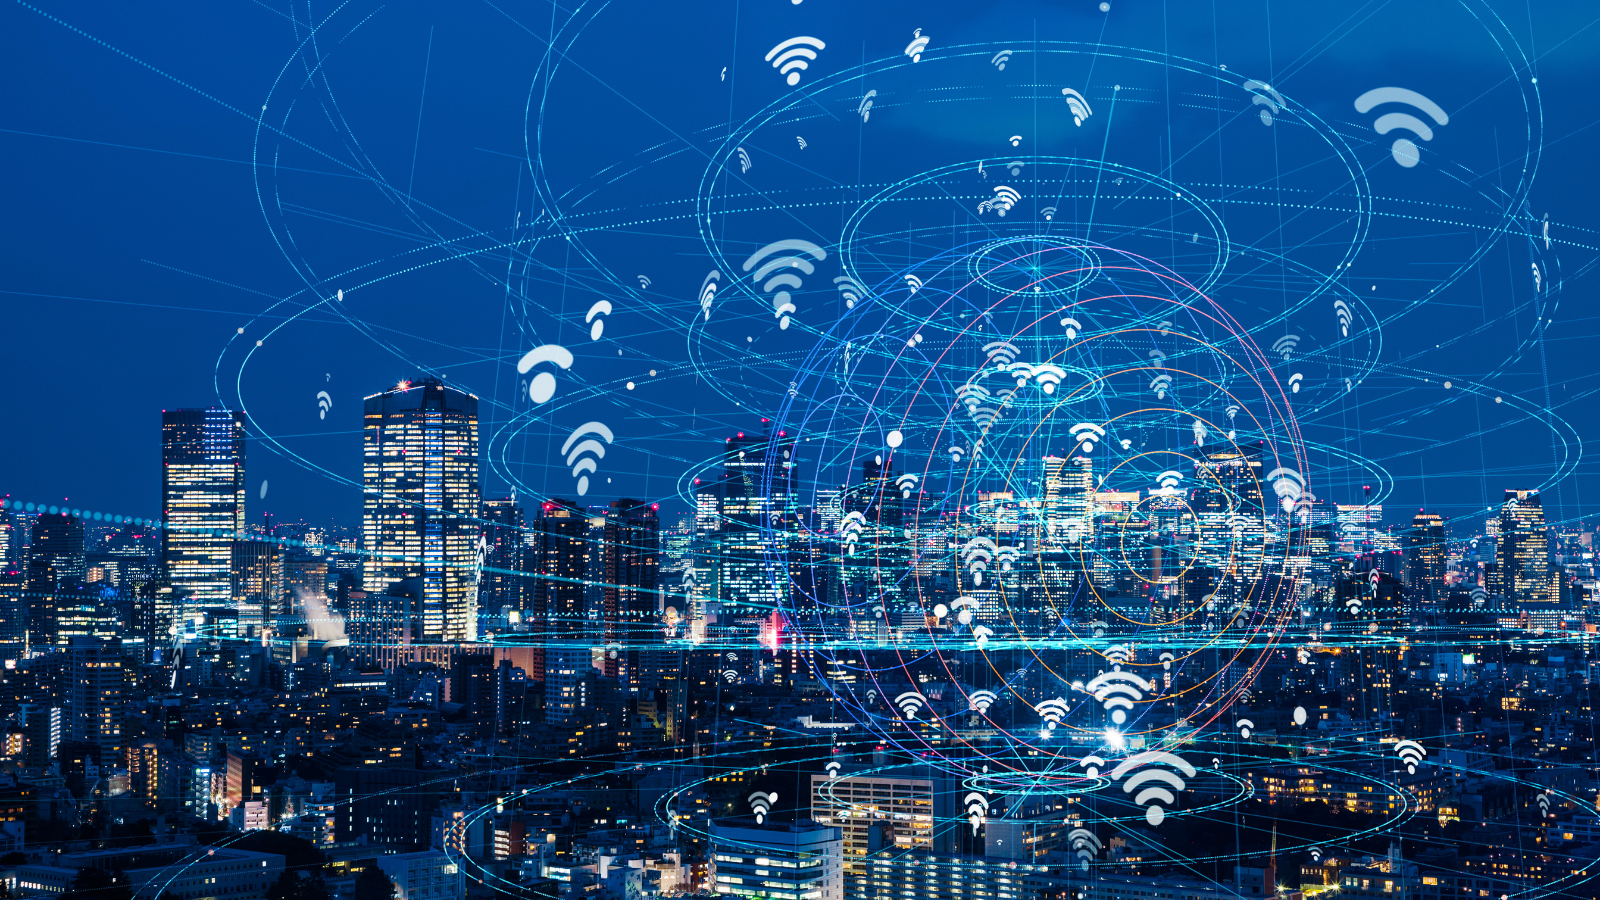 Examining business interruption in a hyper-connected world